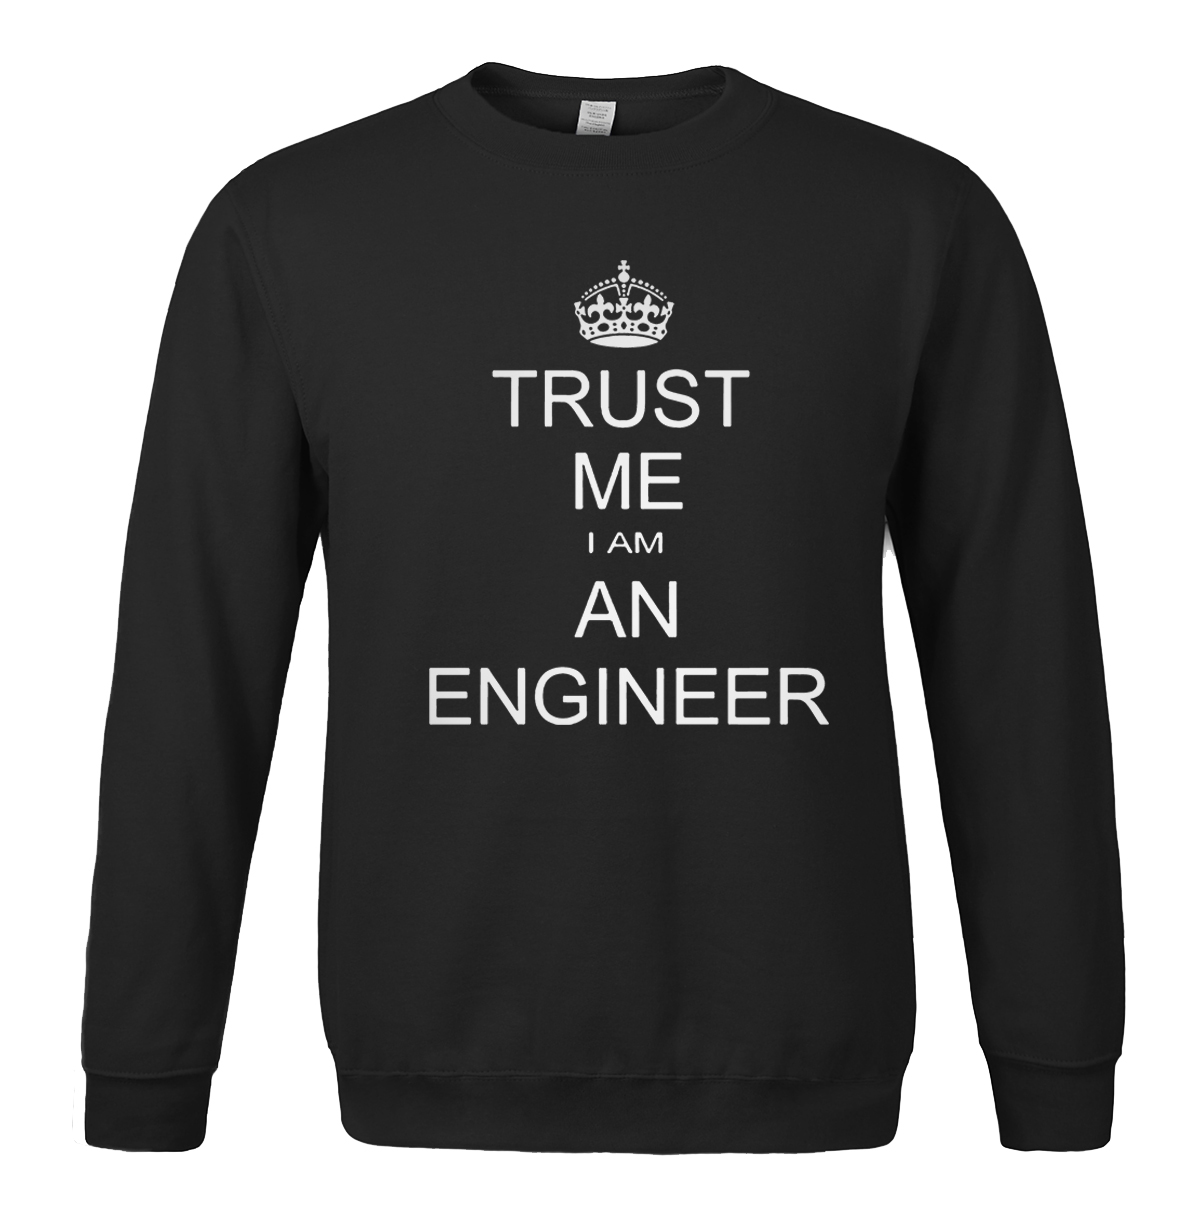 TRUST ME I AM AN ENGINEER printed letter 2018 mens sporstwear spring winter hoody fleece high quality sweatshirt tracksuits